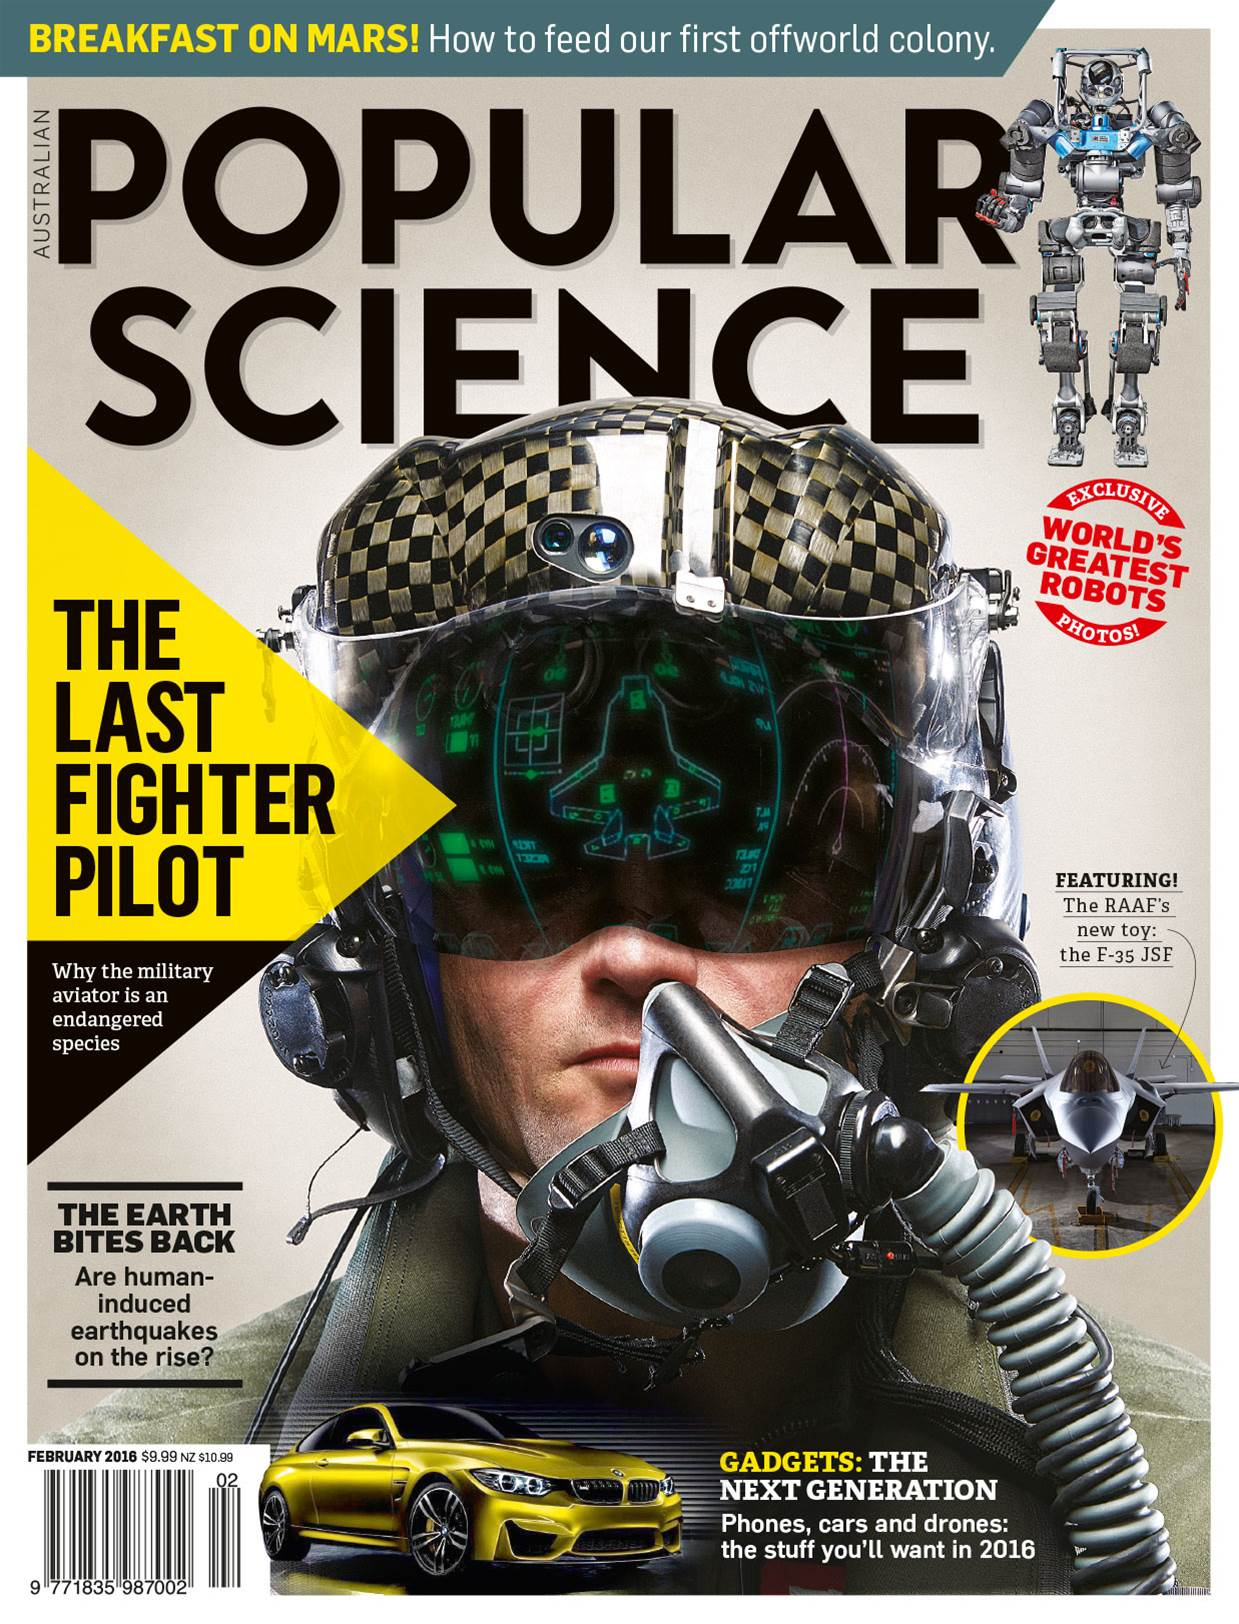 Issue #87 - February 2016